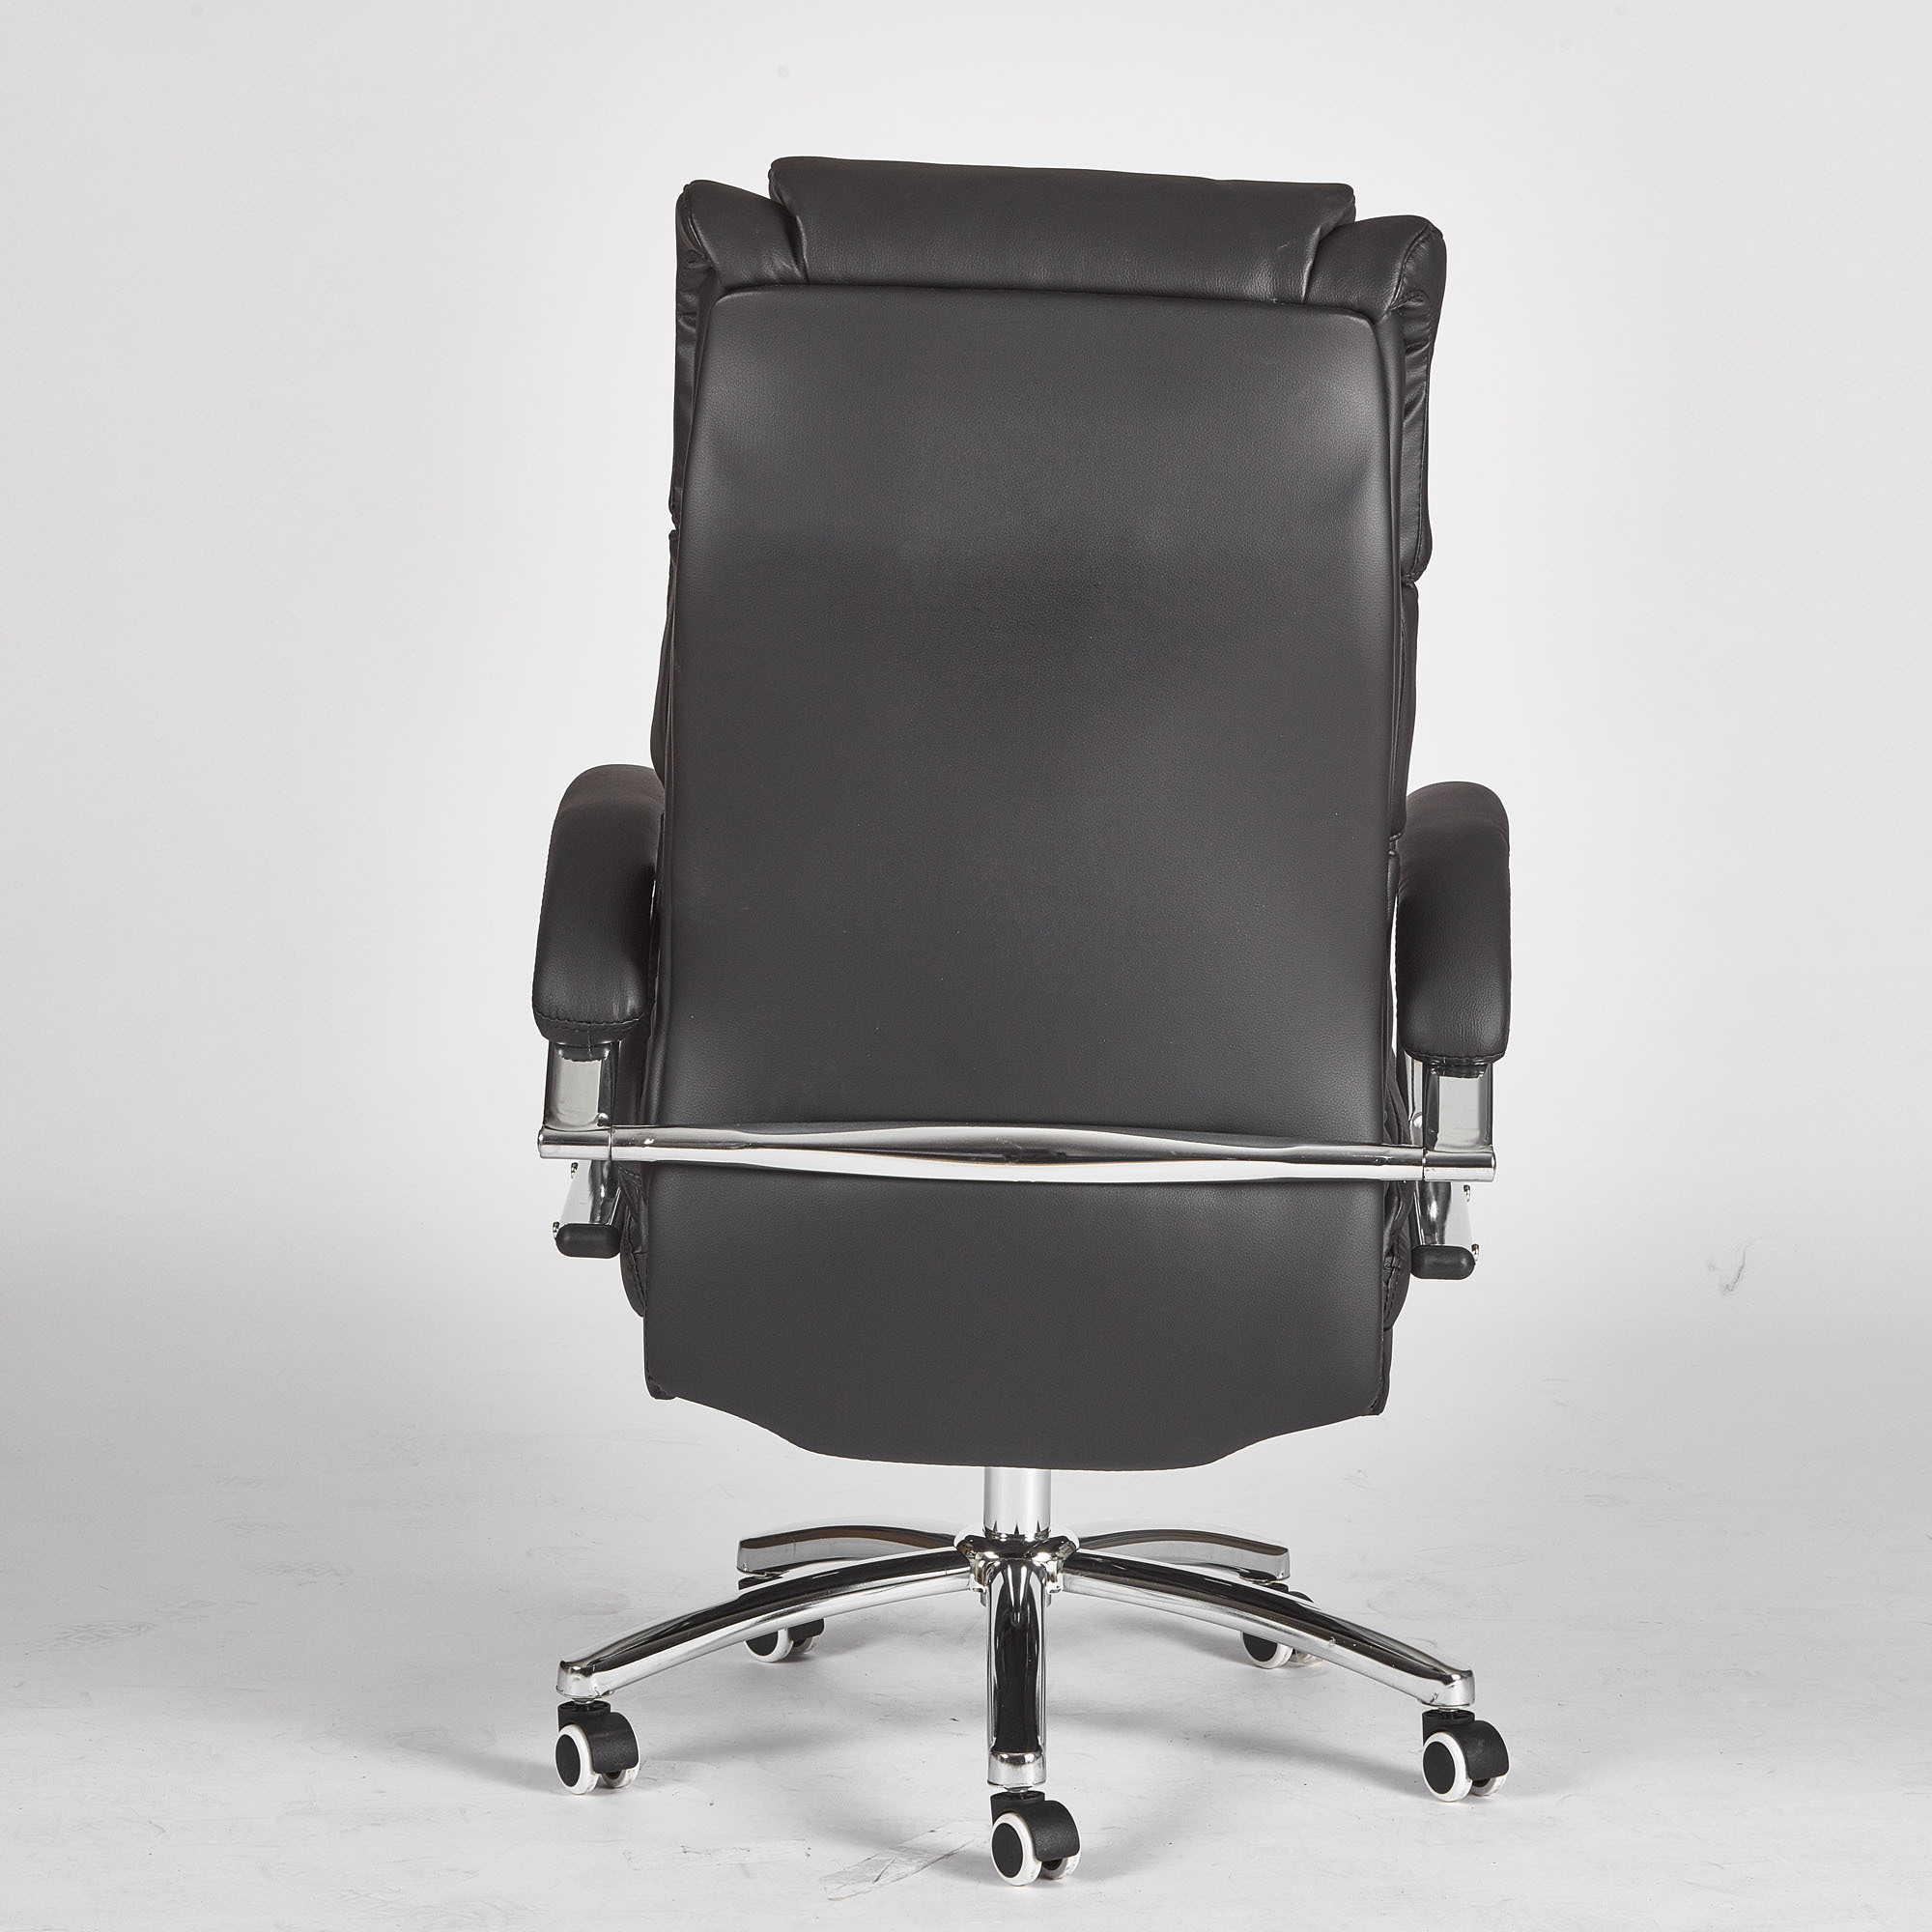 NEW Milan Direct The Roosevelt Big & Tall fice Chair